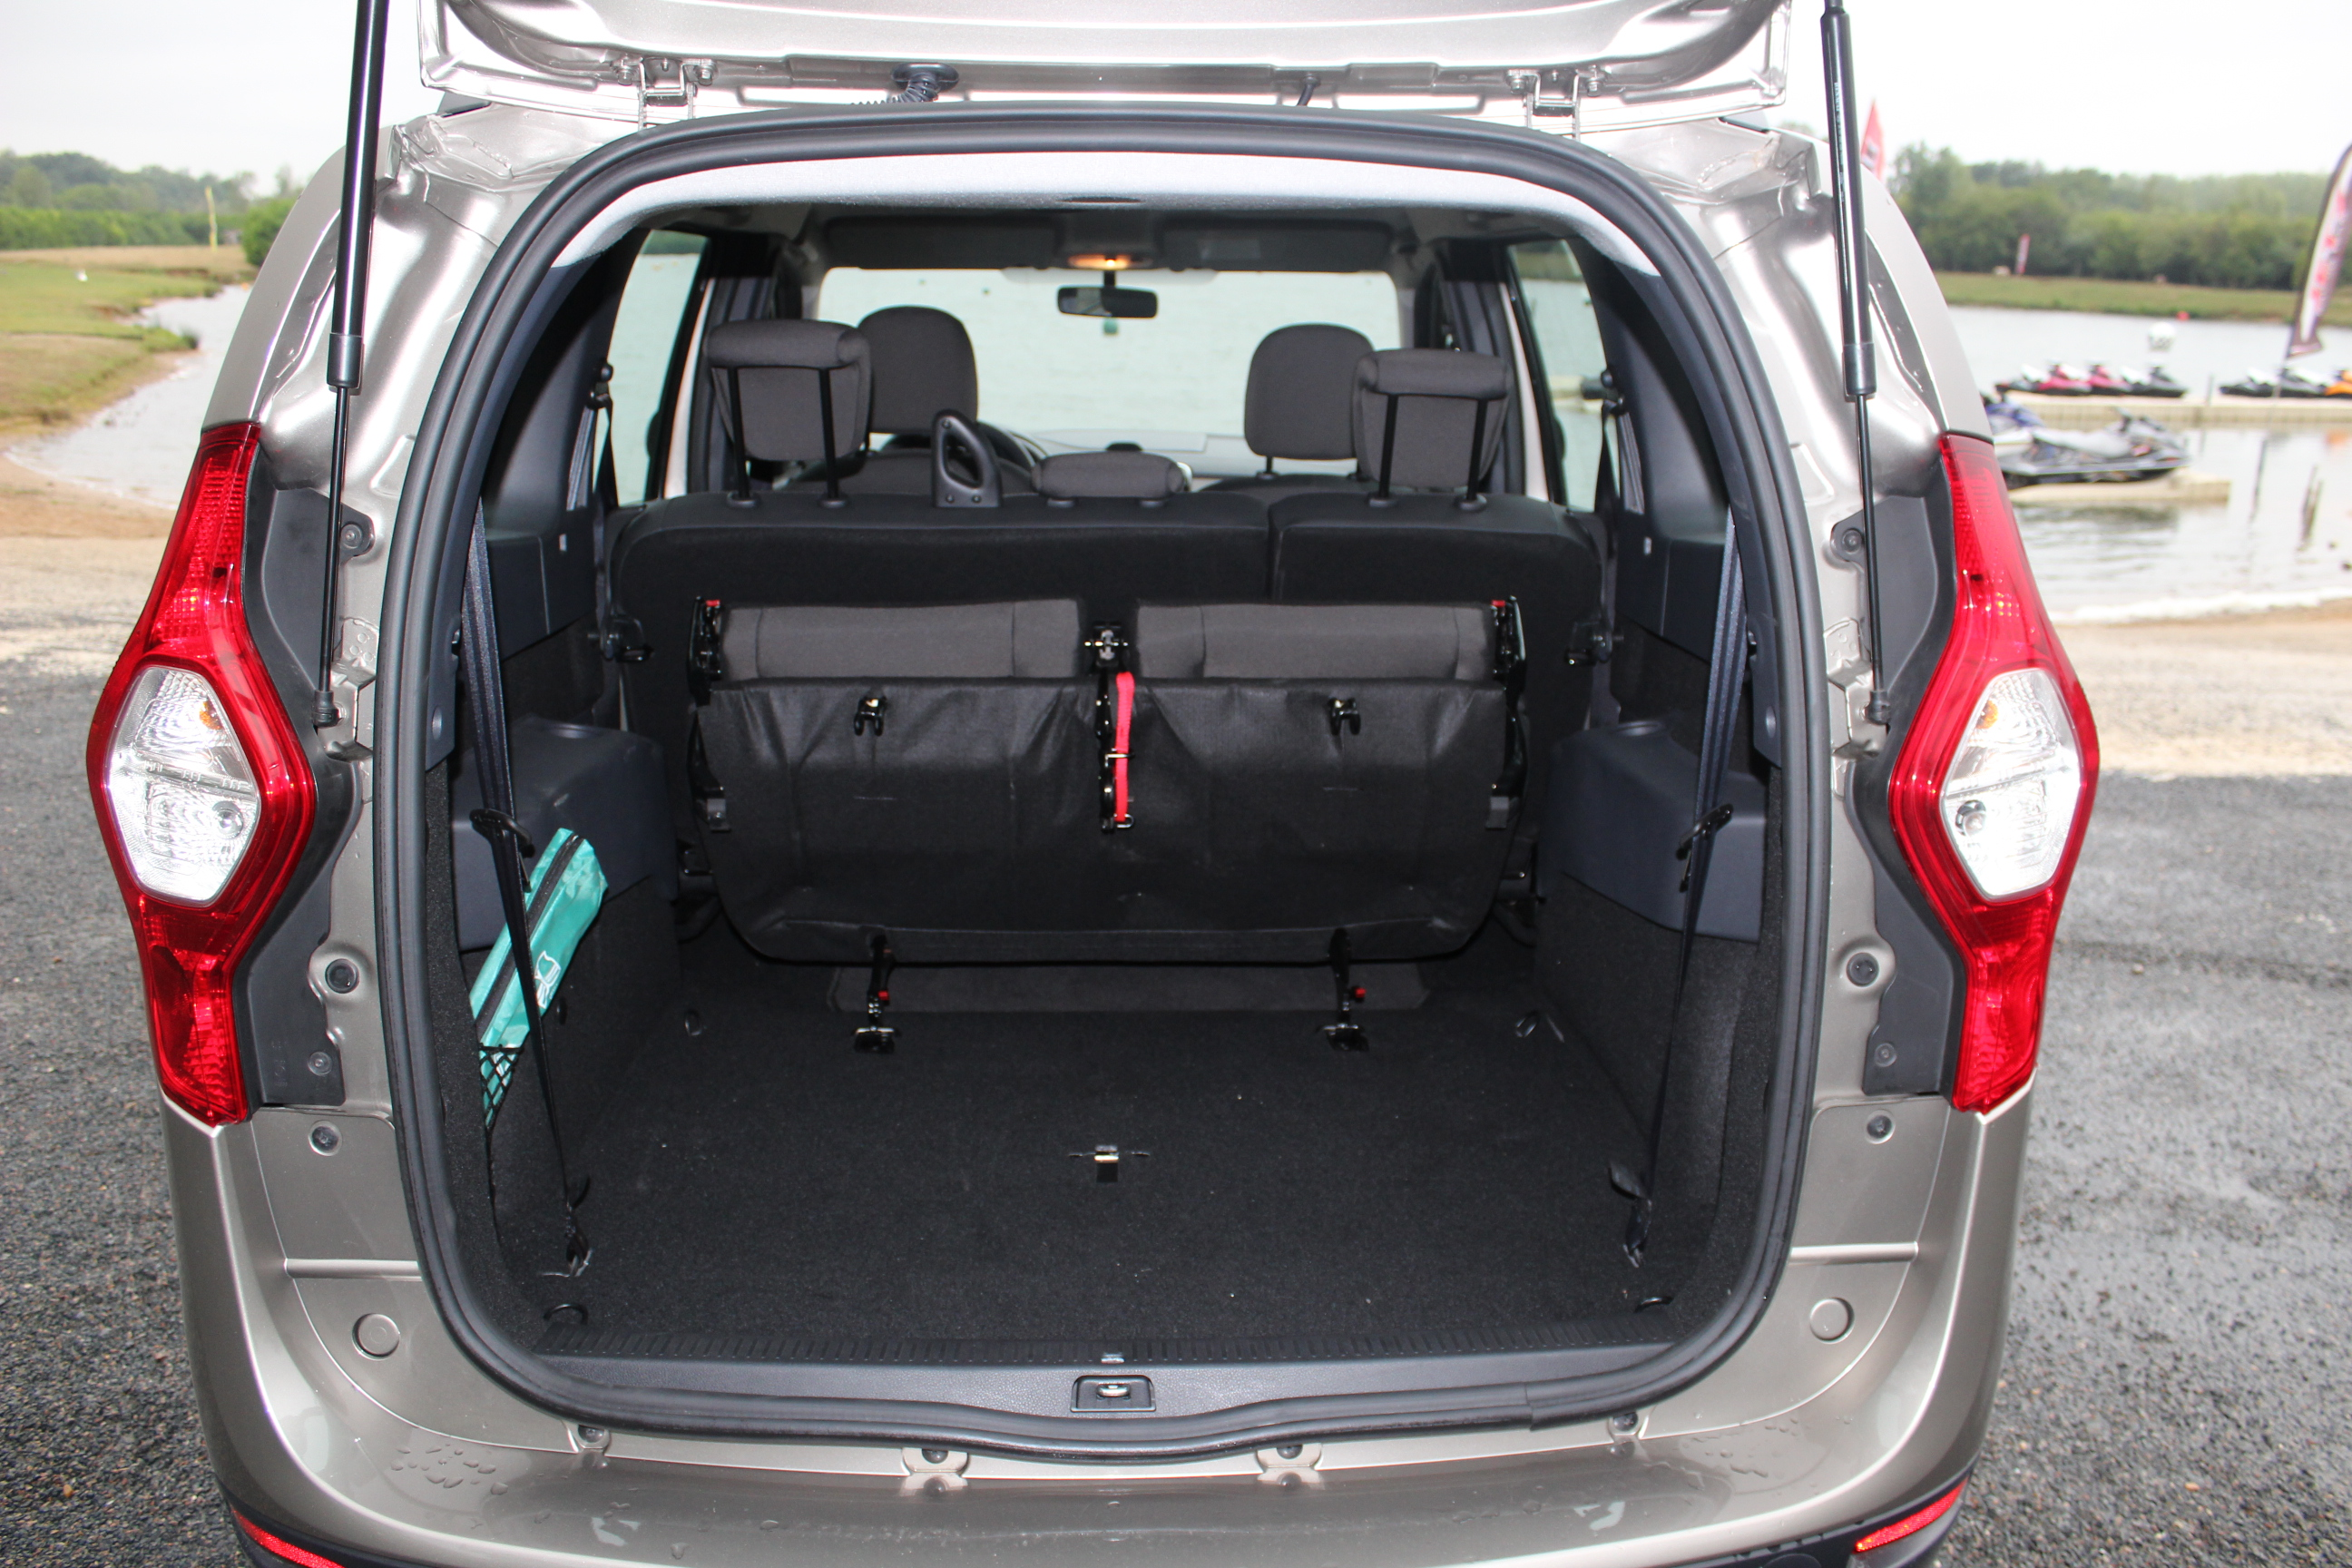 essai dacia lodgy 1 5 dci 90 gentil transport de troupes. Black Bedroom Furniture Sets. Home Design Ideas